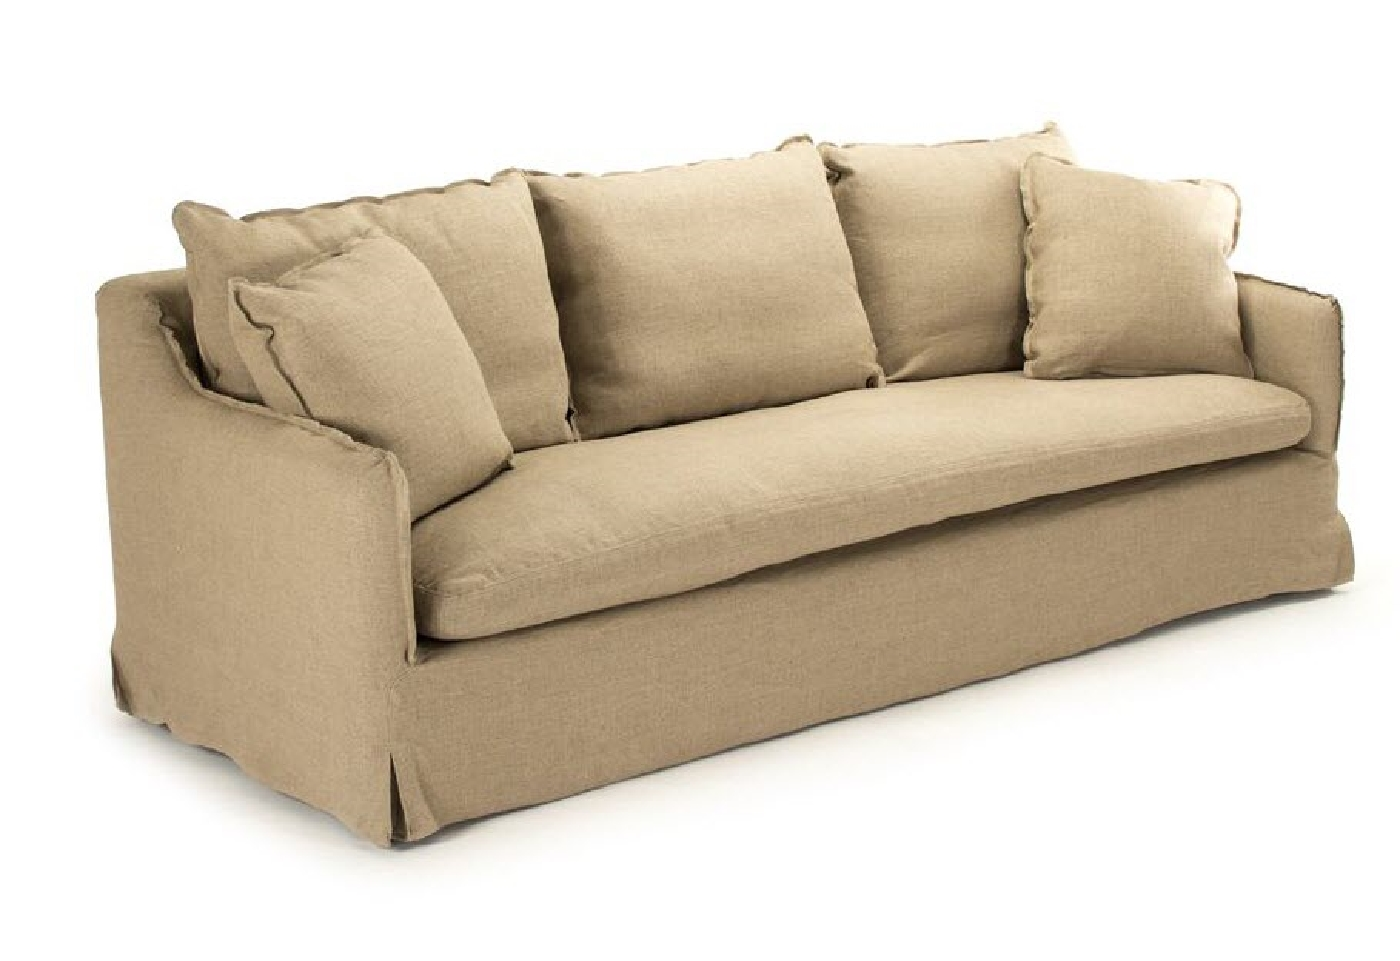 sofa covers low price compact pull out bed todd slipcover zentique